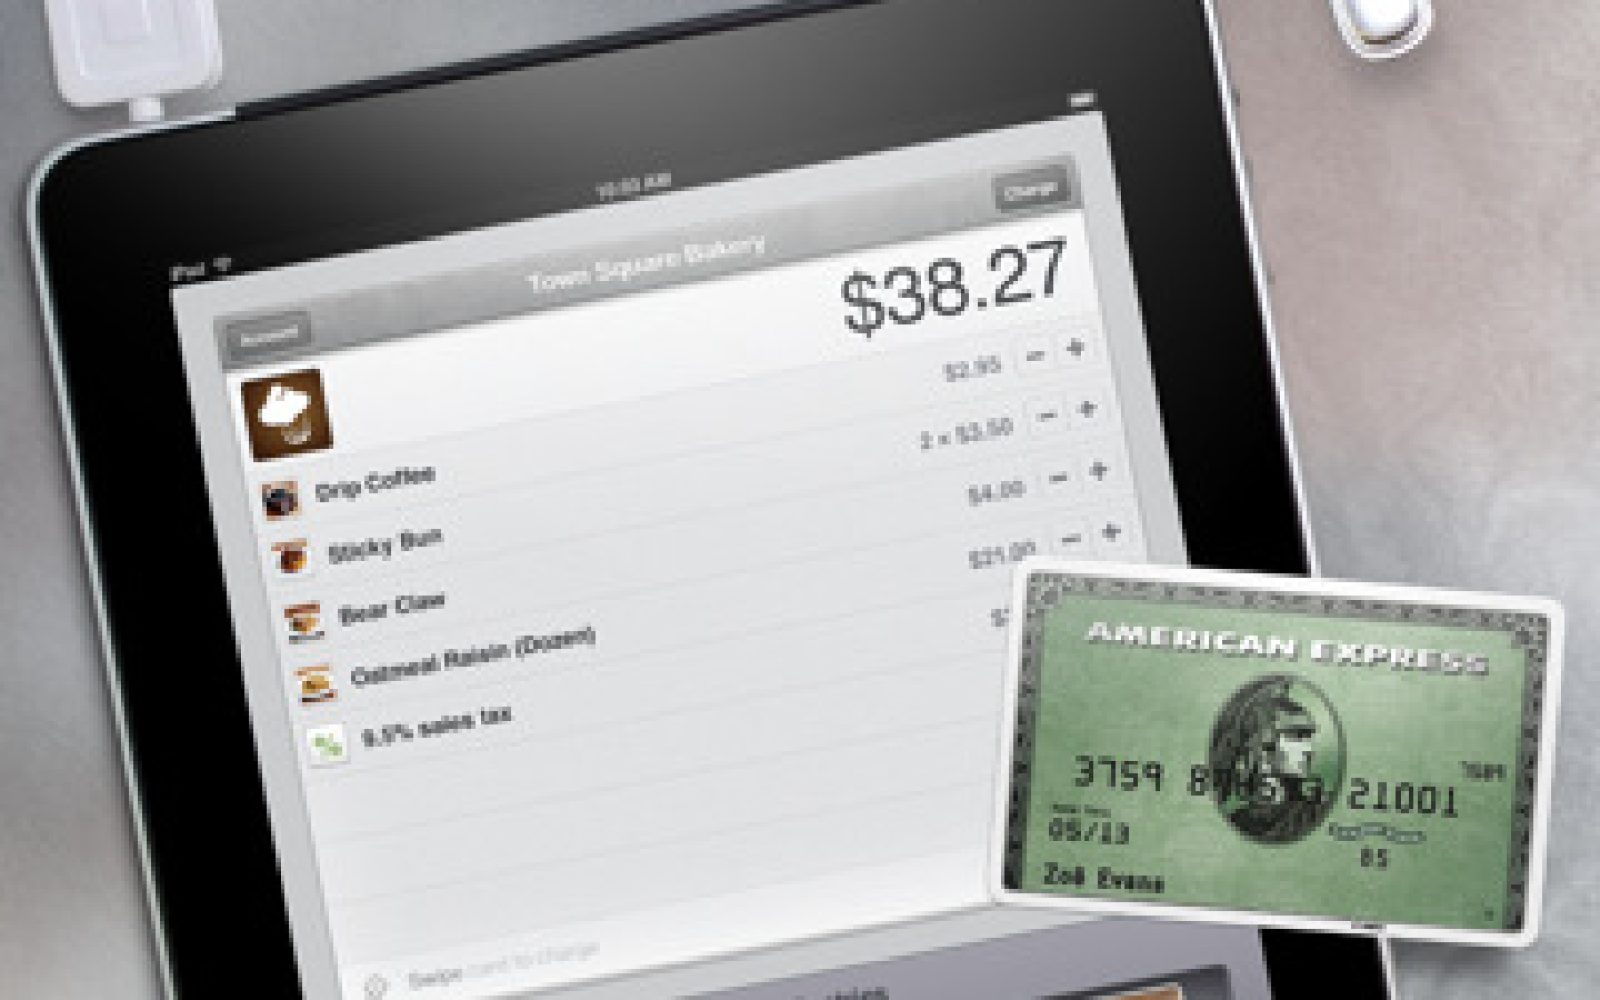 Square enhances iOS app, debuts Square Register for iPad - 9to5Mac